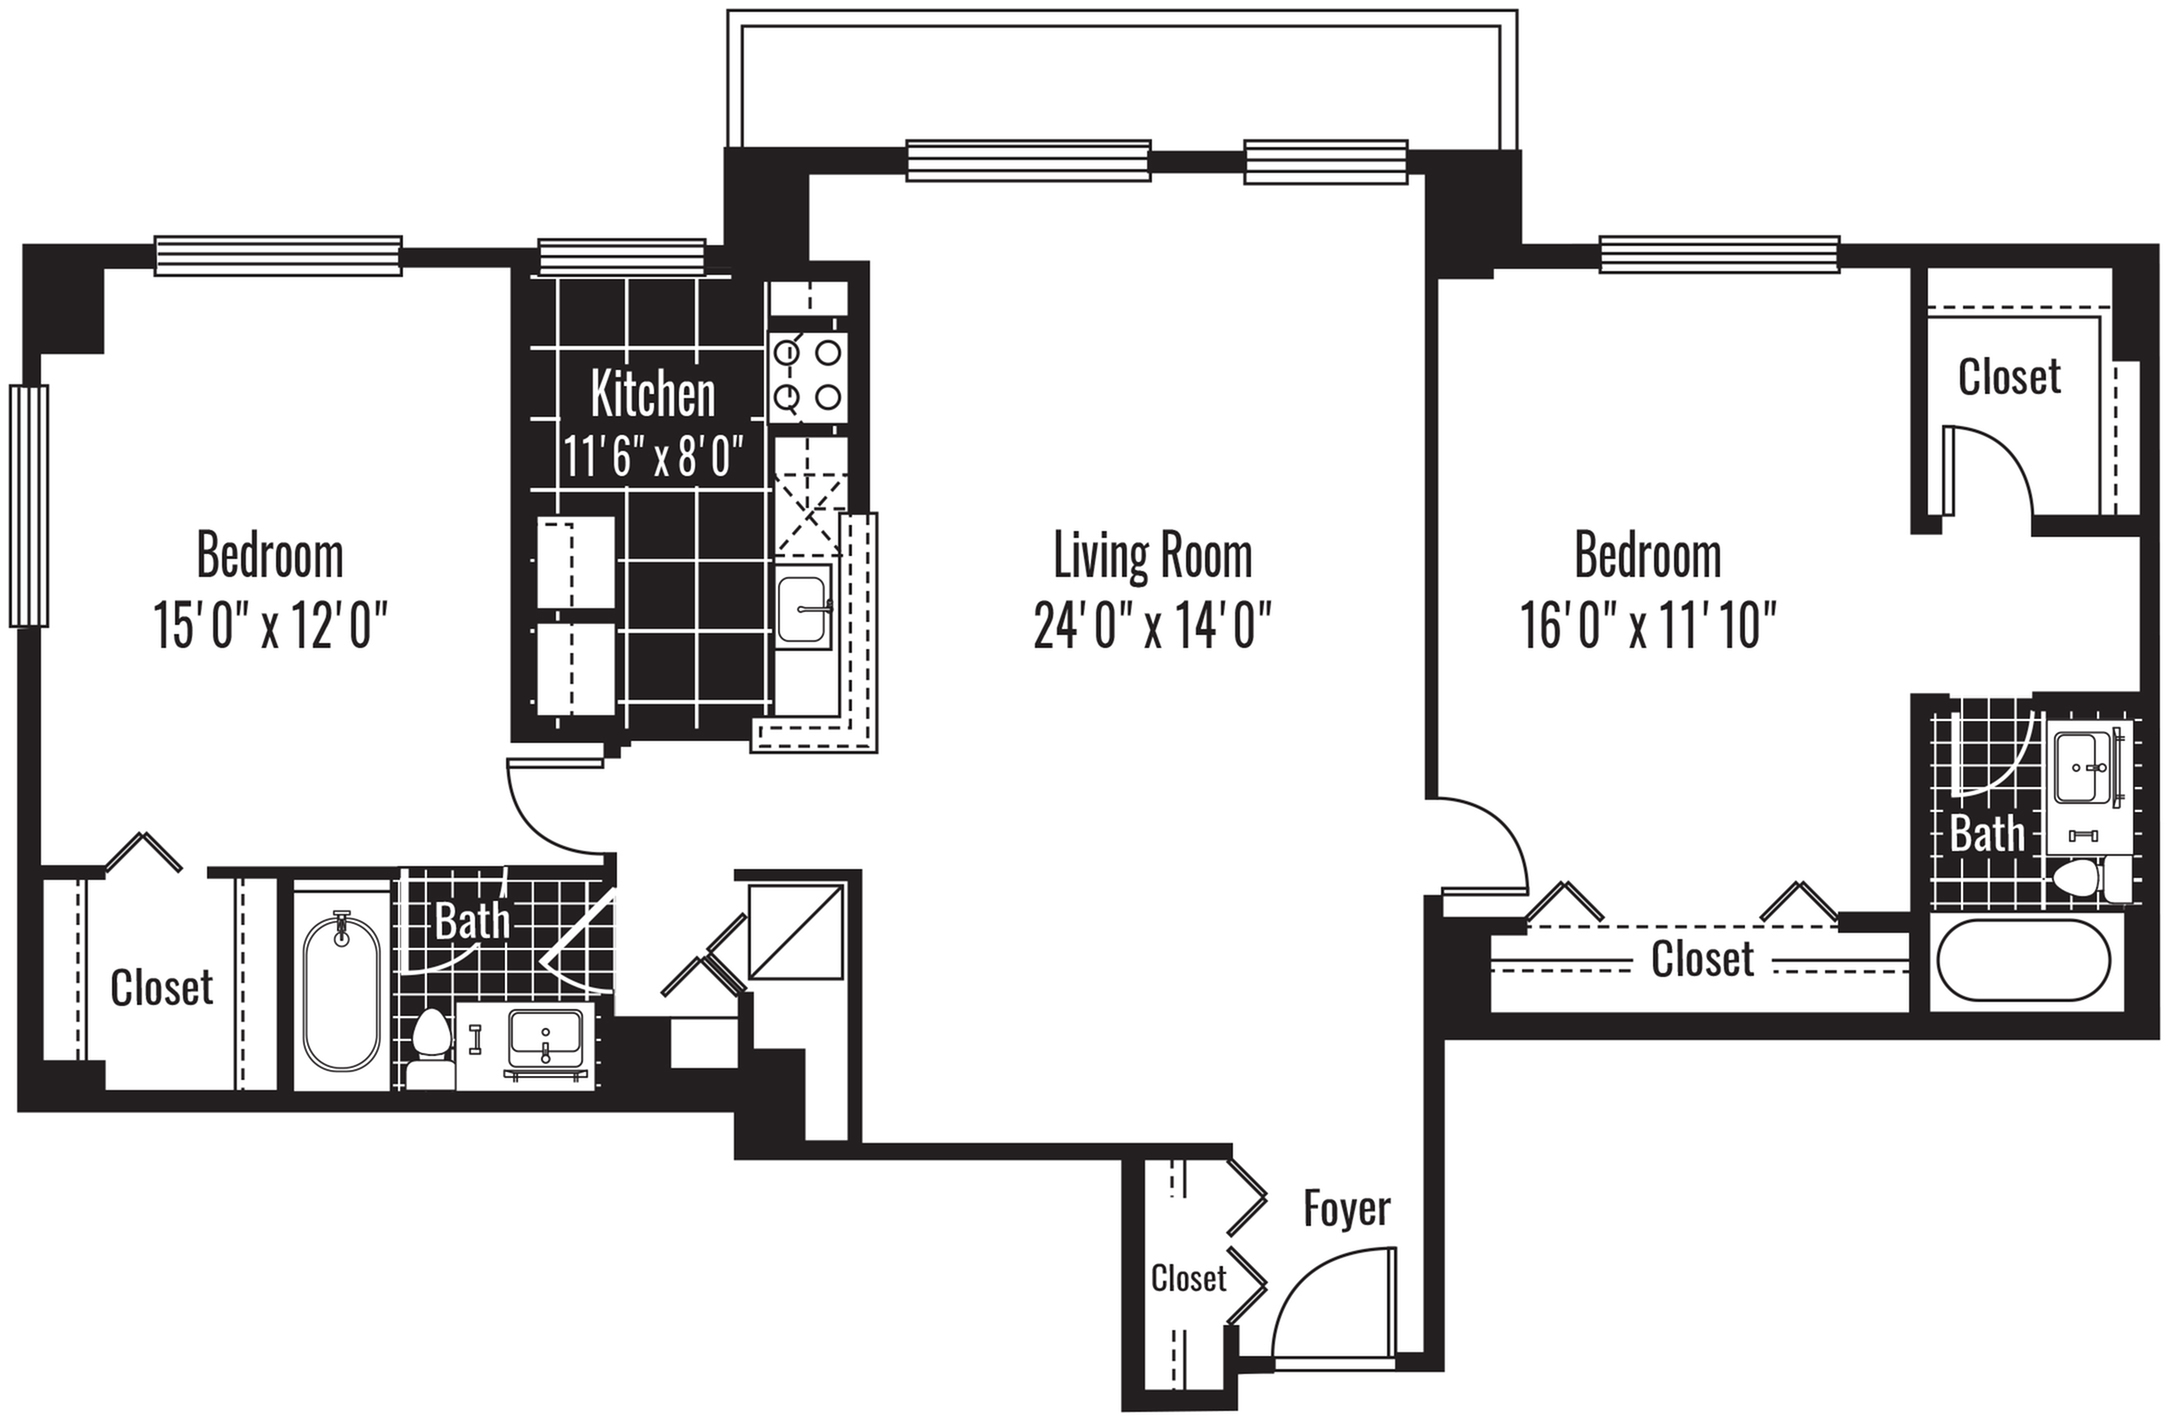 1250 square foot two bedroom two bath apartment floorplan image